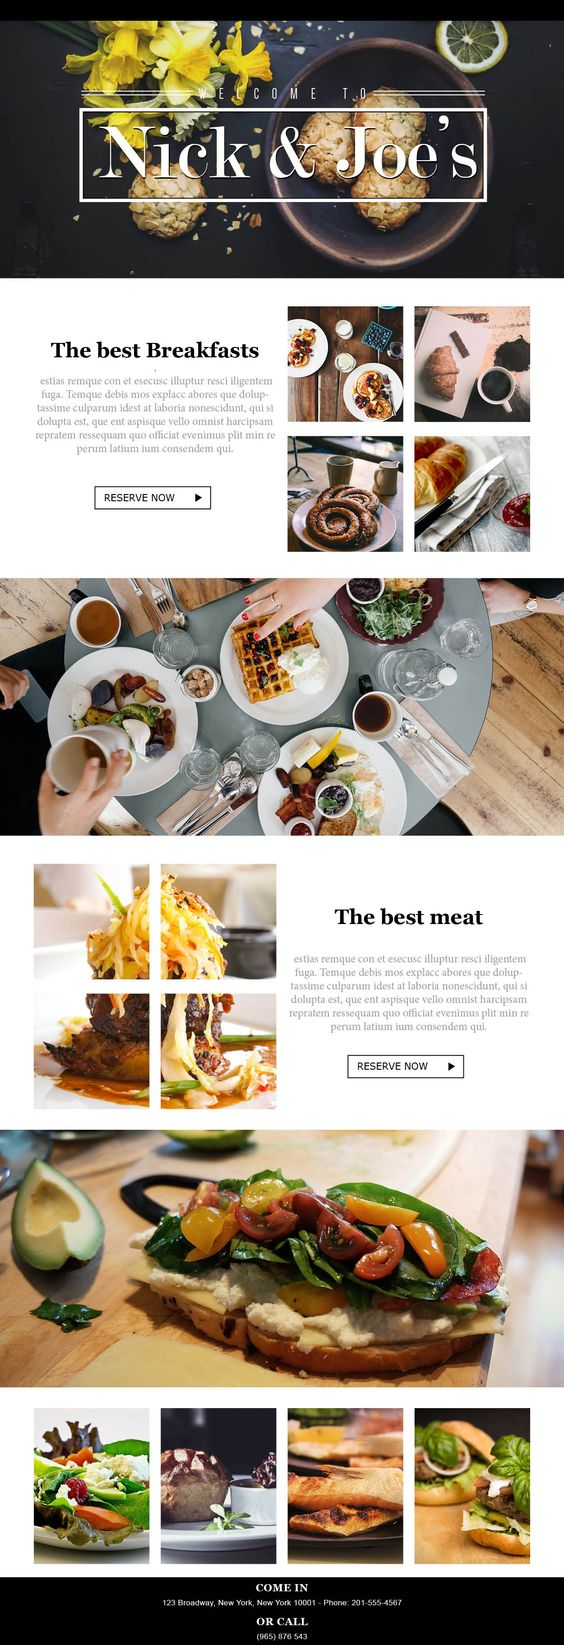 Website Design & Branding<br> for Restaurants